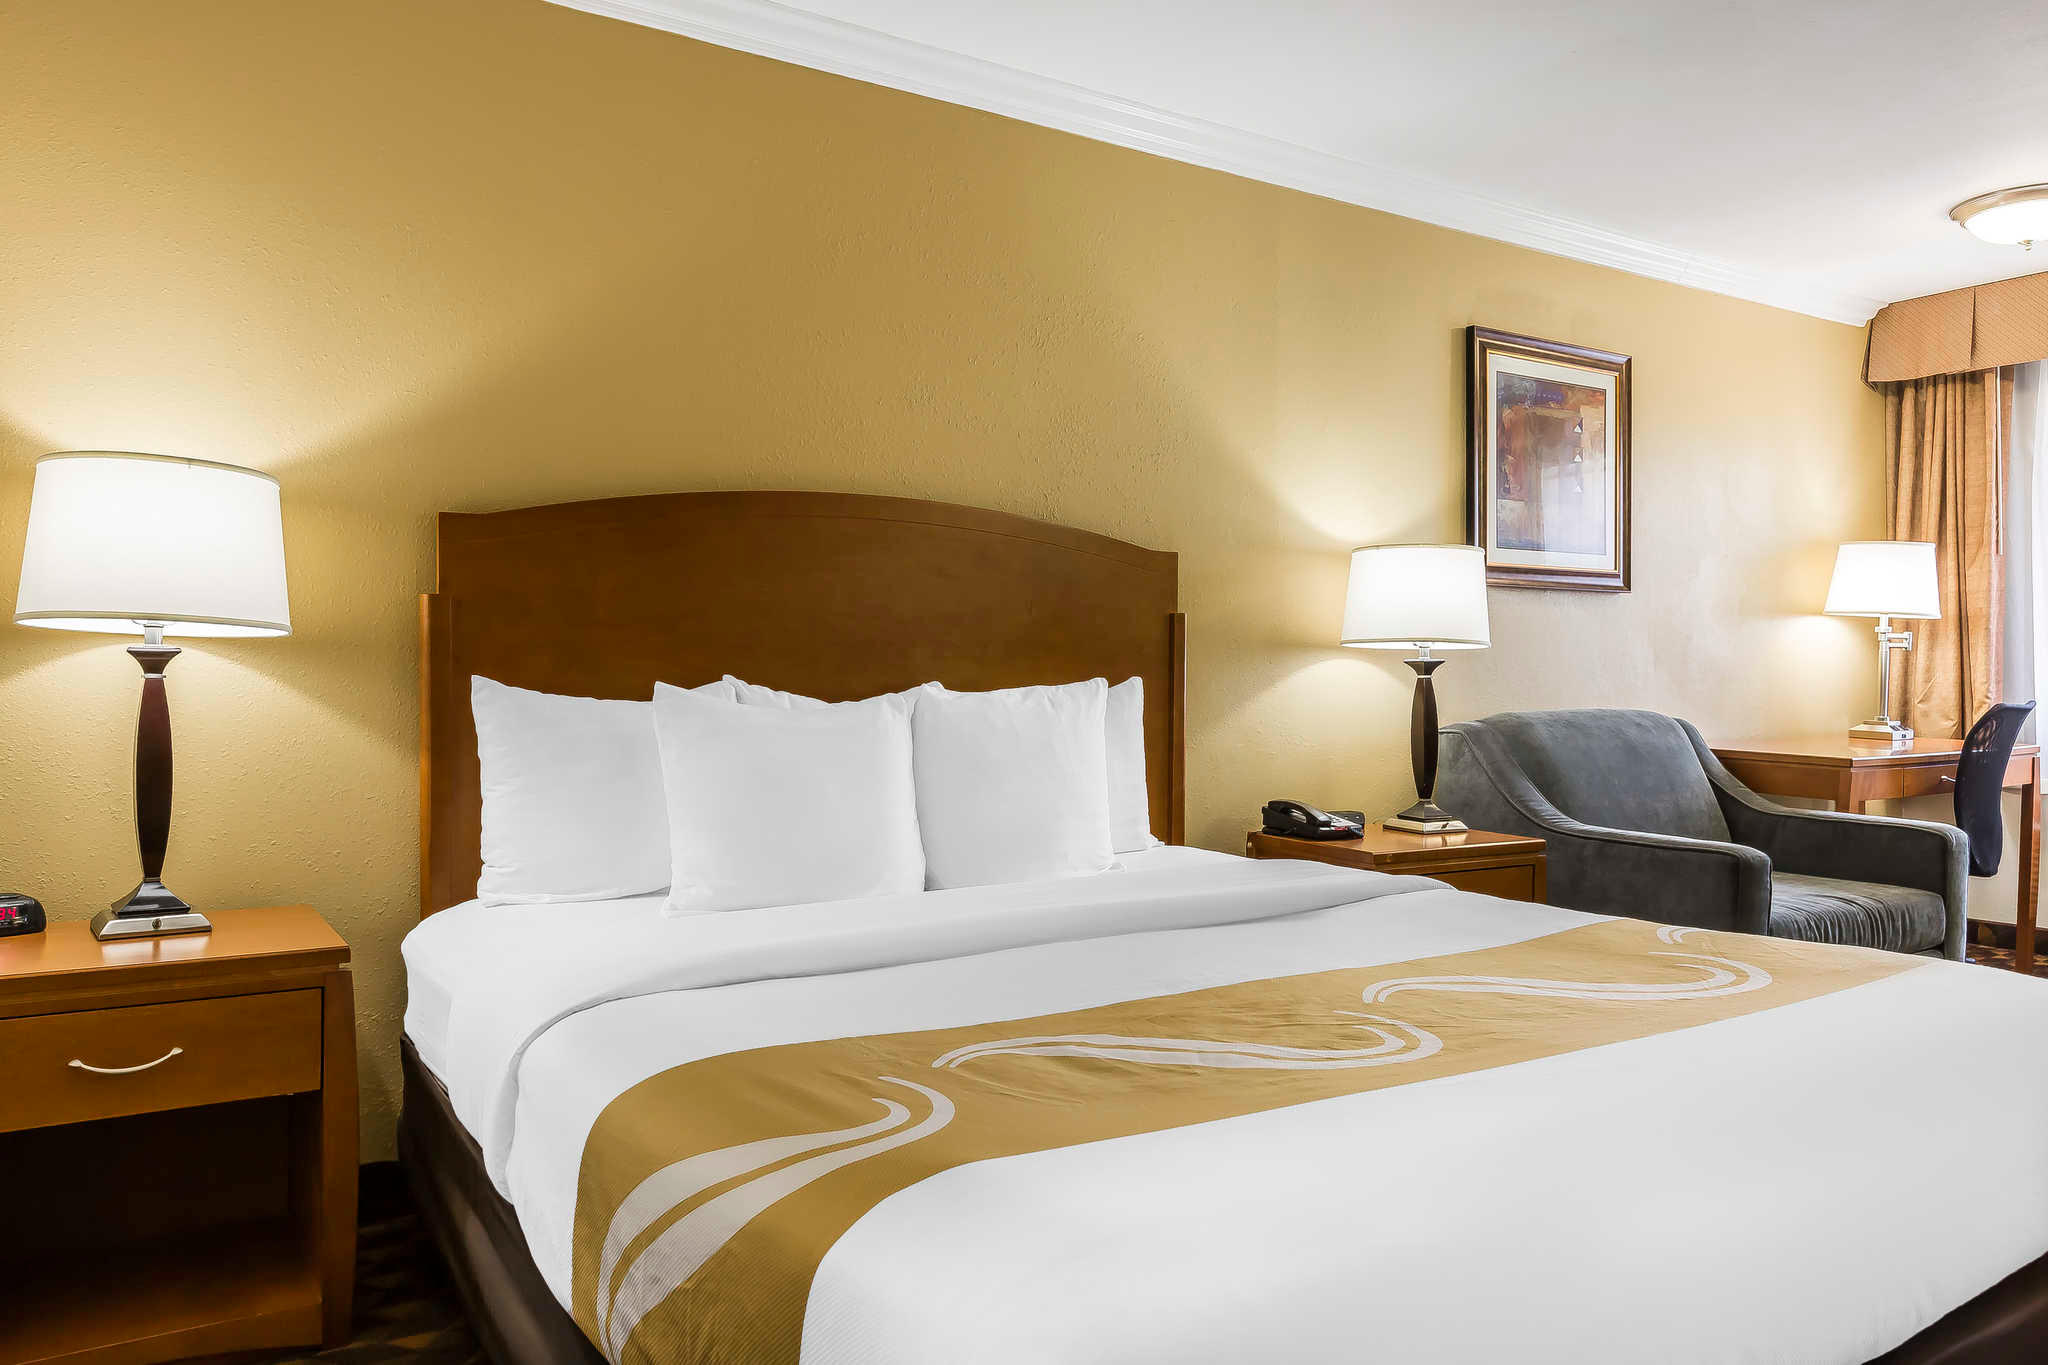 Quality Inn & Suites Los Angeles Airport - LAX image 6